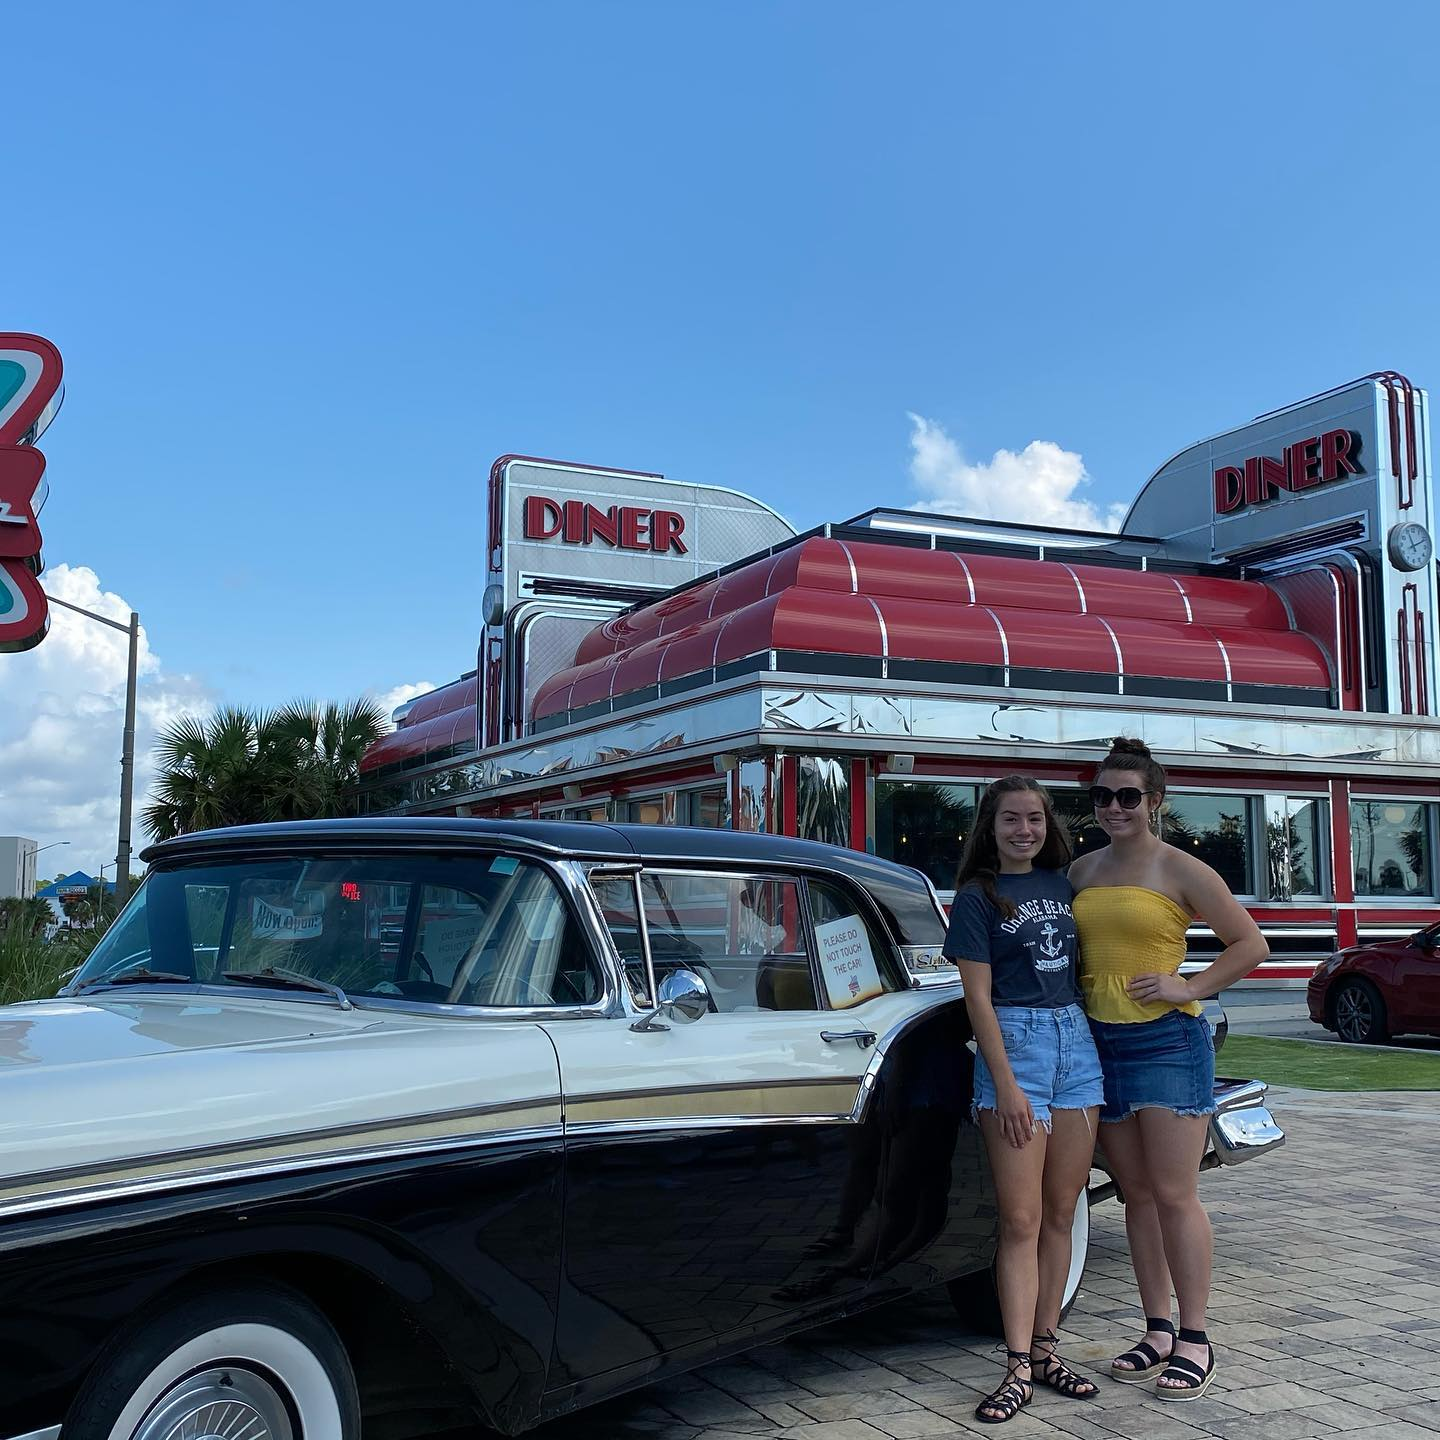 Enjoy breakfast at the Sunliner Diner- go back to the good ole days of the fifties. Read the newspaper, take a picture with the old cars and maybe even get to eat in one too. #breakfastdiners #breakfastingulfshores #olddinersign